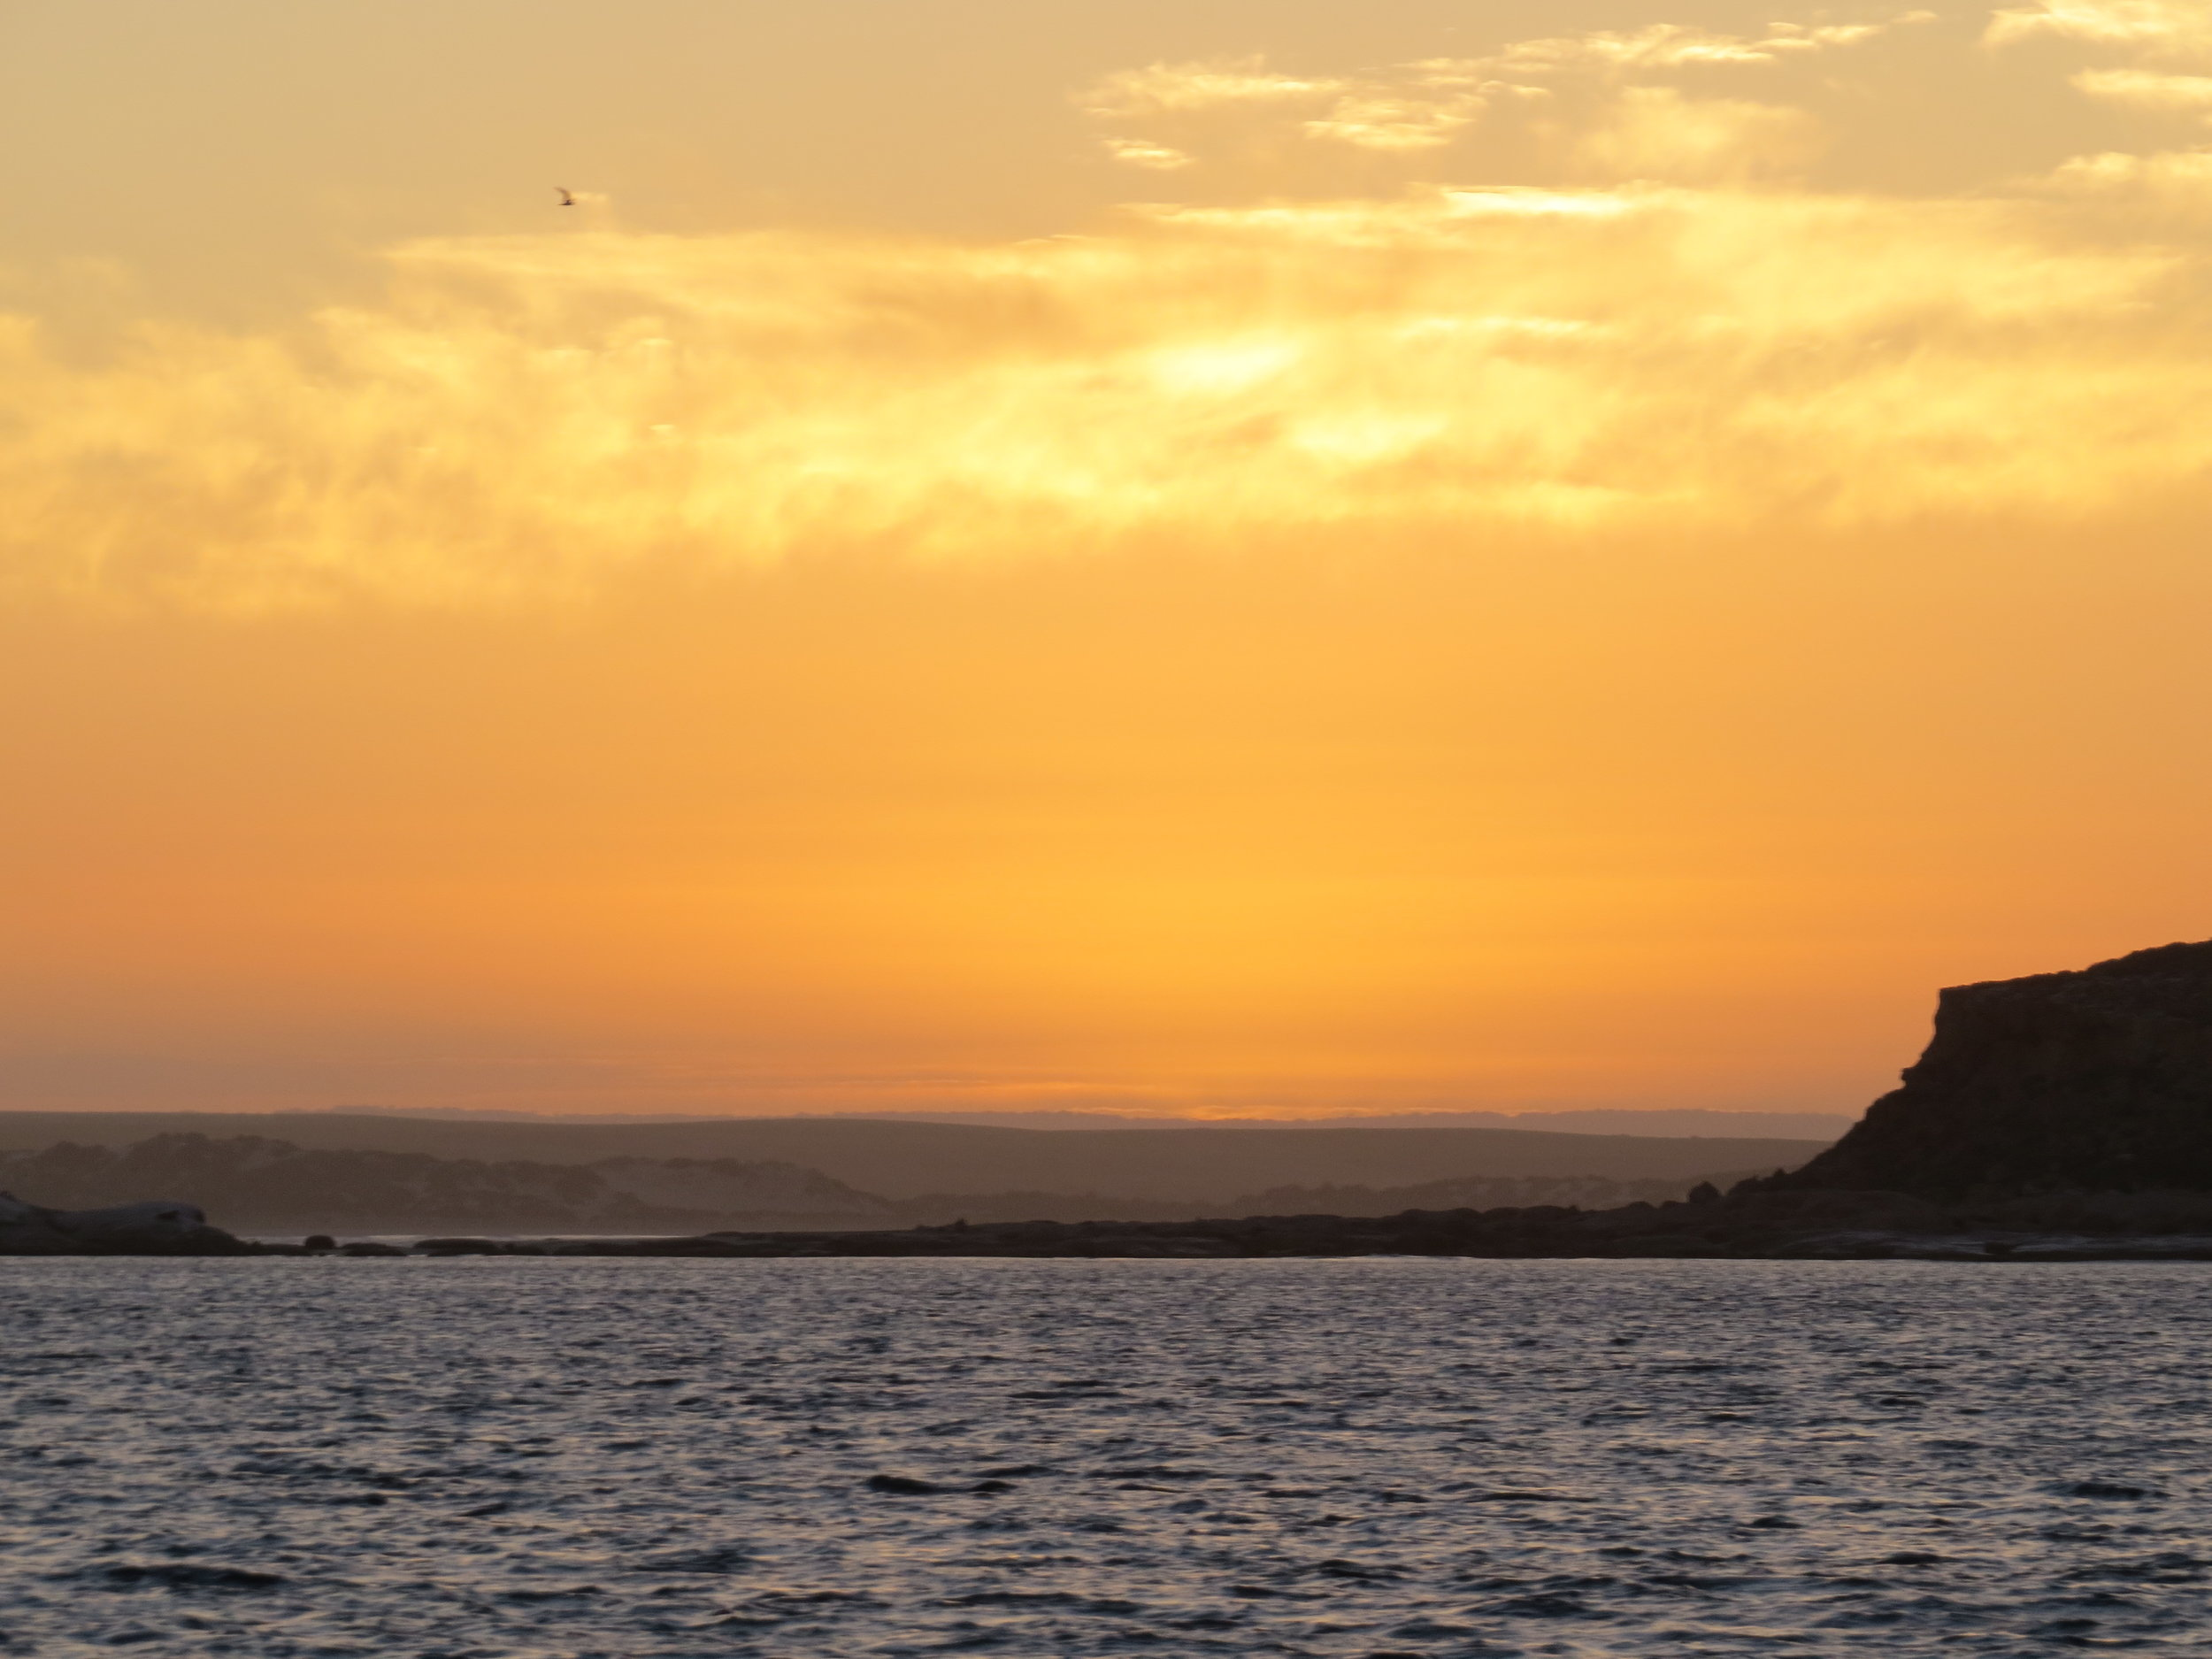 Sunrise at Waldegrave Island en route from Port Lincoln to Streaky Bay